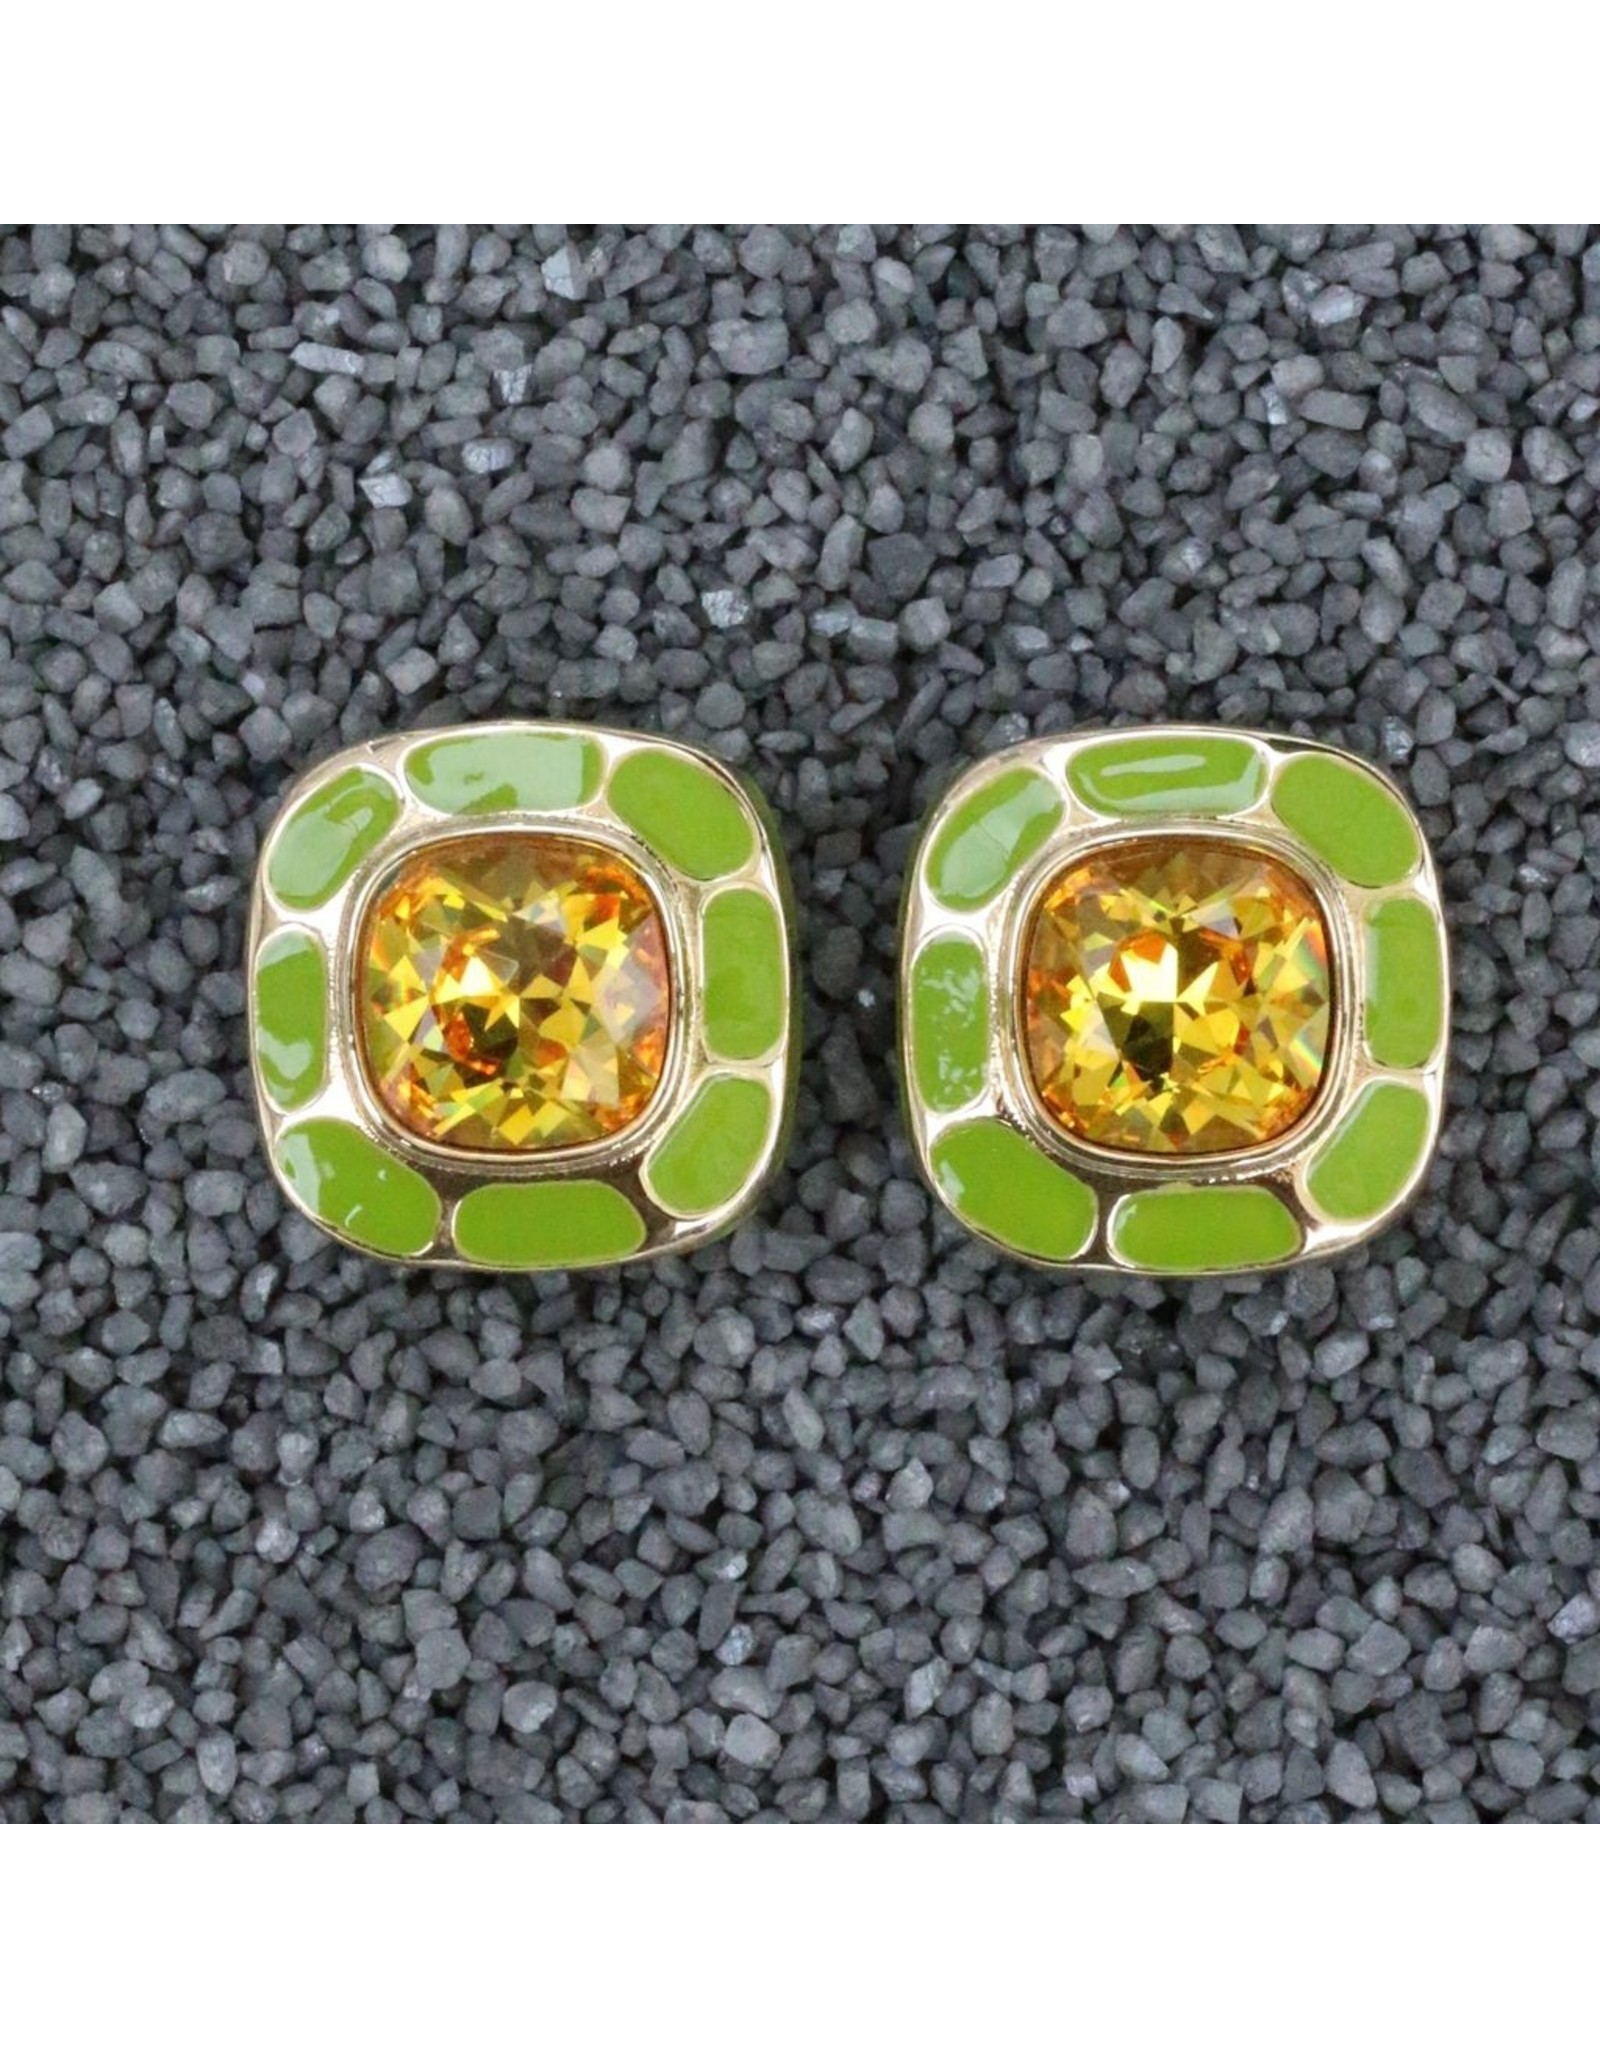 VC Italy VCExclusives: Square in Square Topaz & Green